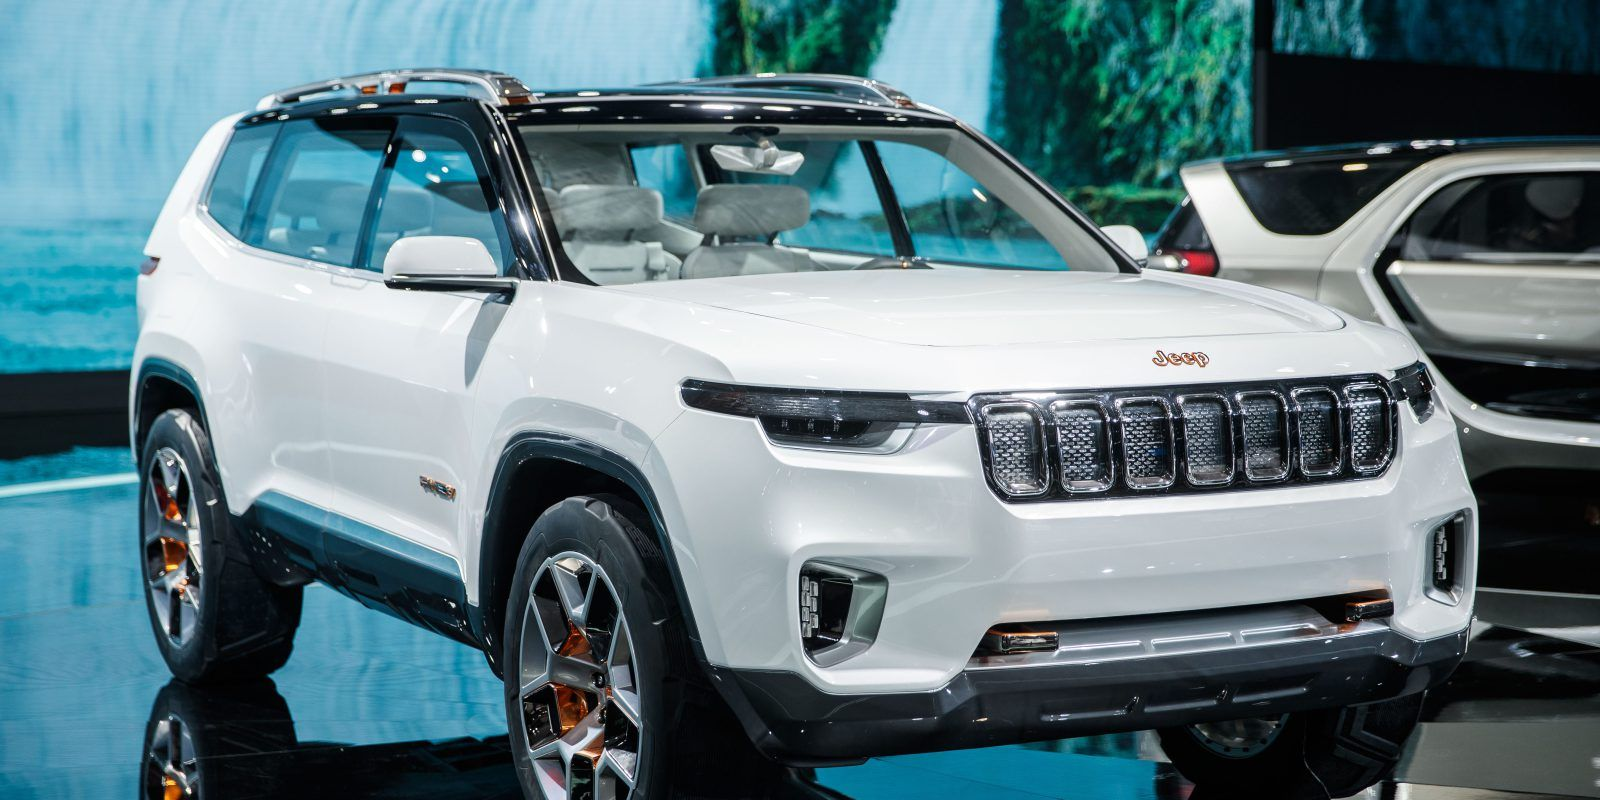 Jeep S Plug In Hybrid Suv Concept Debuts With A 40 Miles All Electric Range Jeep Concept Jeep Grand Cherokee Jeep Grand